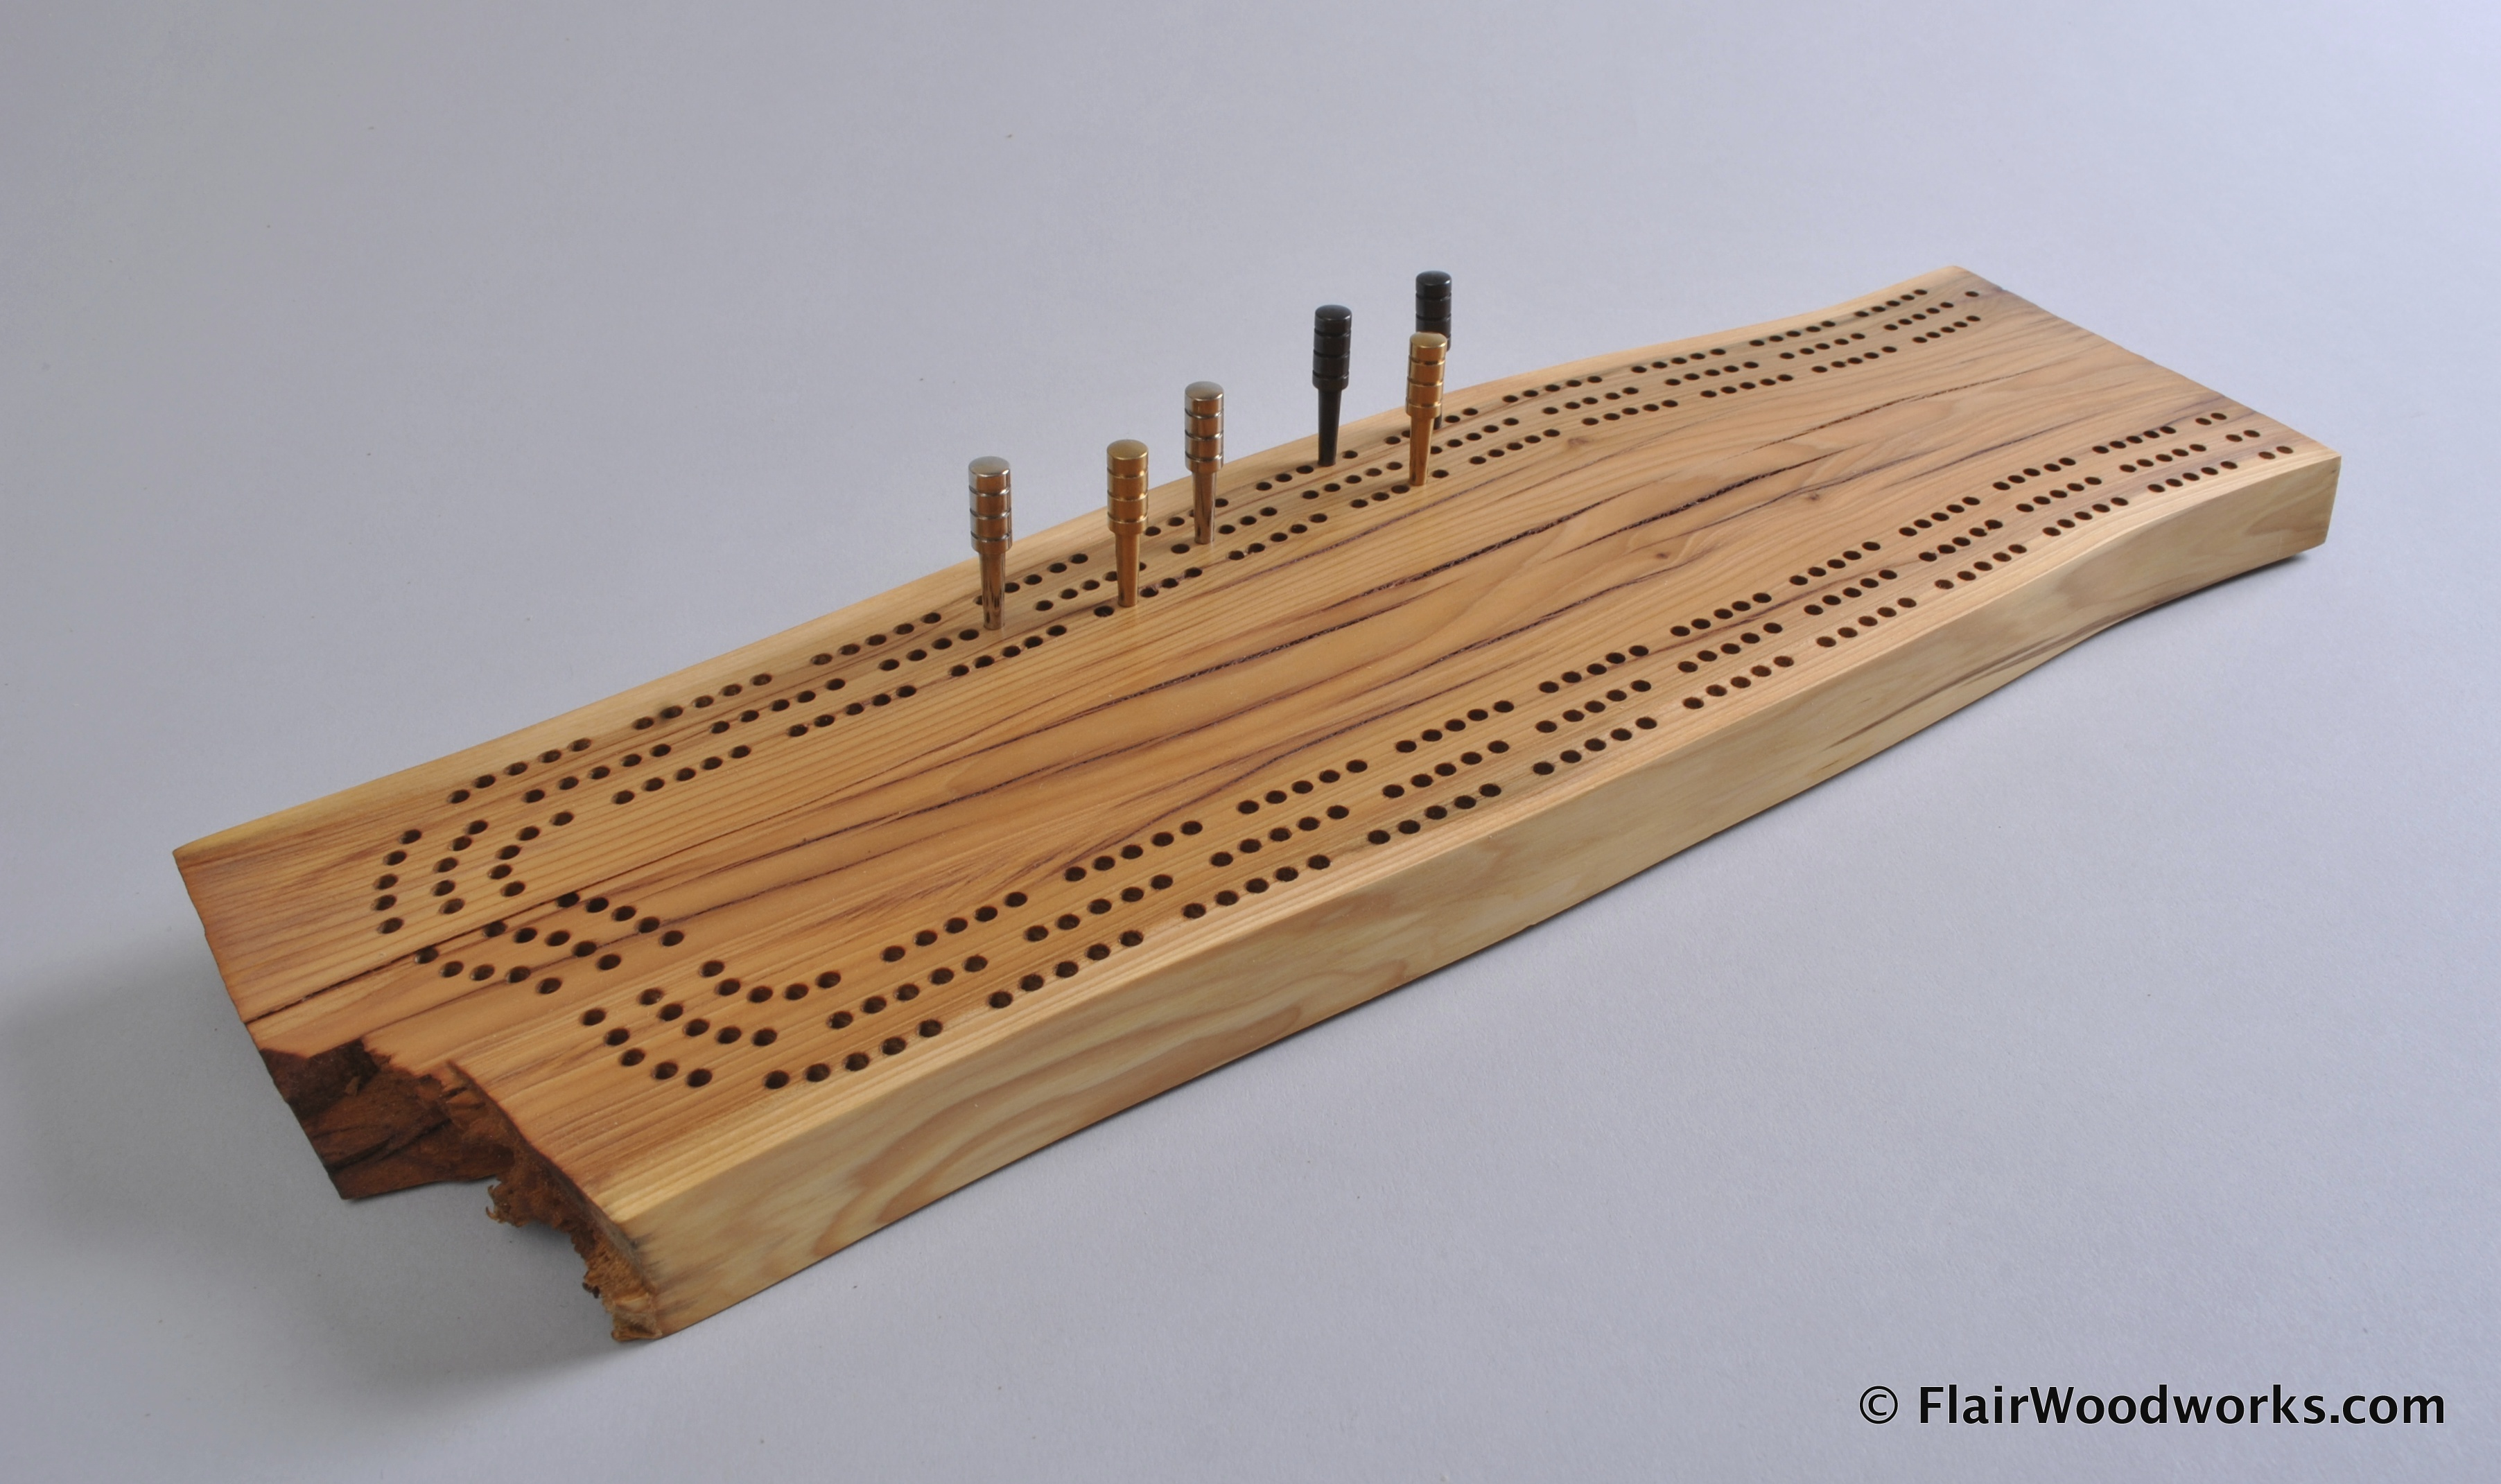 It's just a picture of Adaptable Printable Cribbage Boards